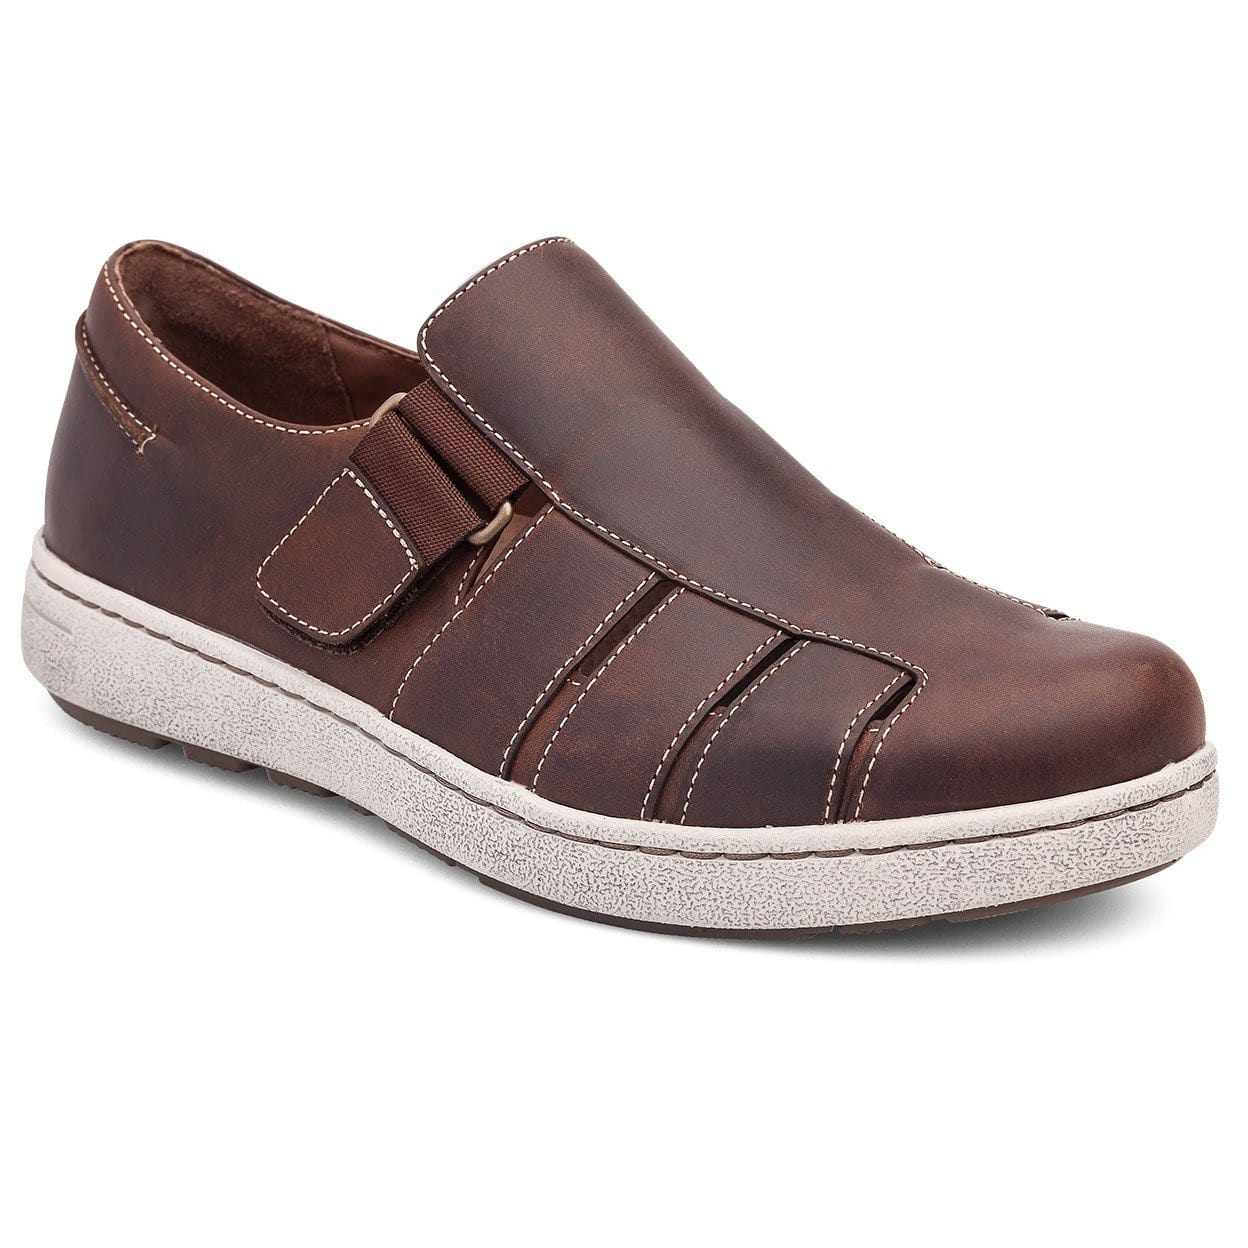 Dansko Men's Vince Leather Boat Sandal Shoe